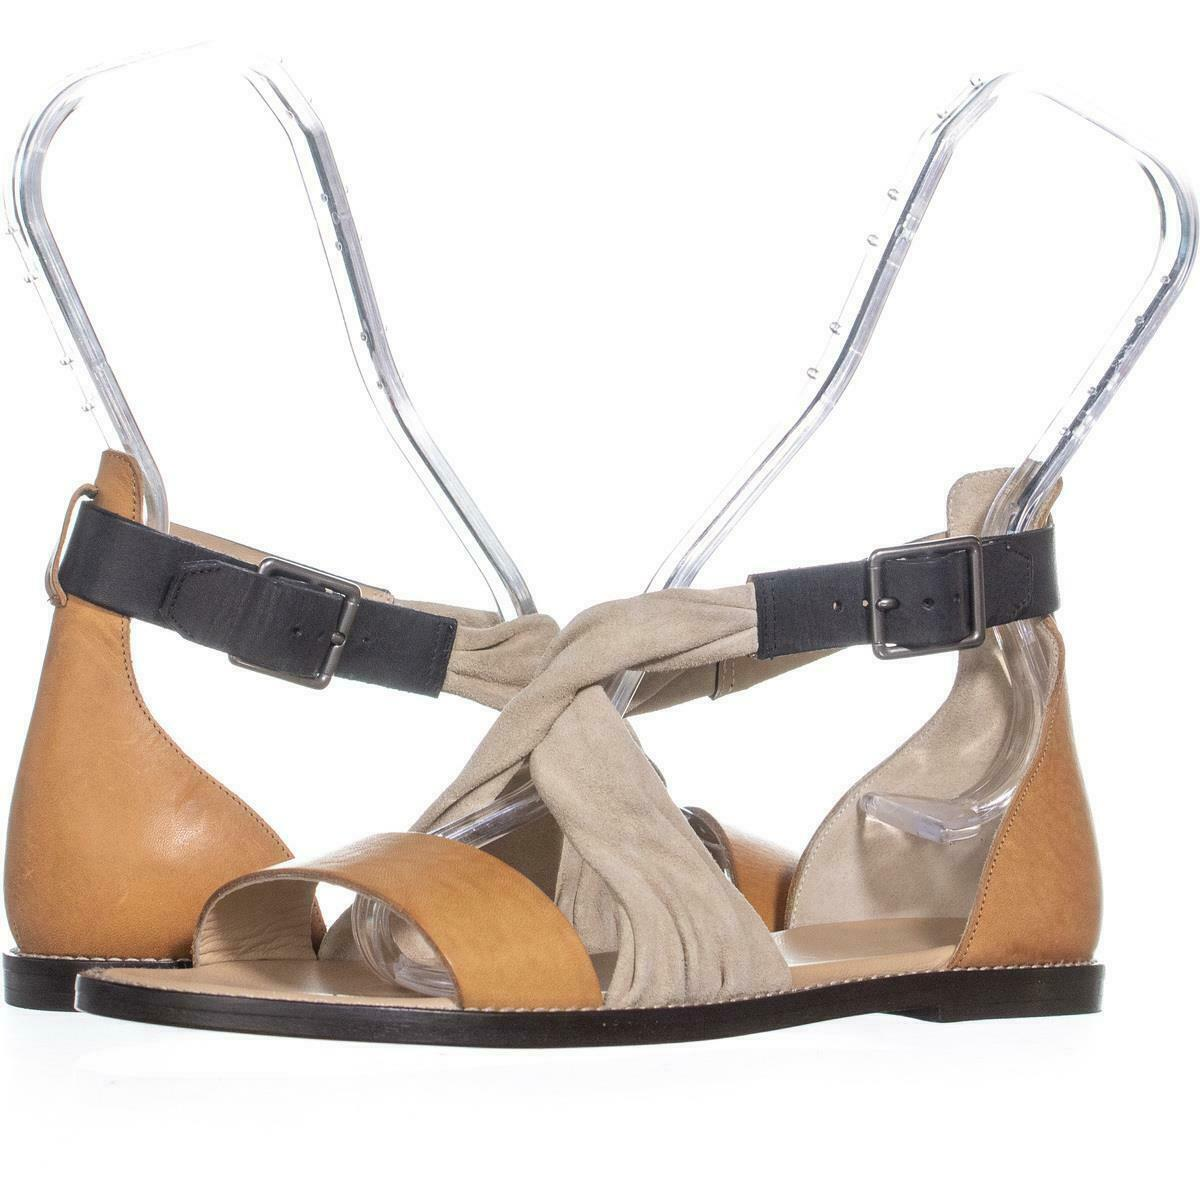 Primary image for Belstaff Tallon Ankle Strap Flat Sandals 520, Cream/Tan/Black, 7 US / 37 EU